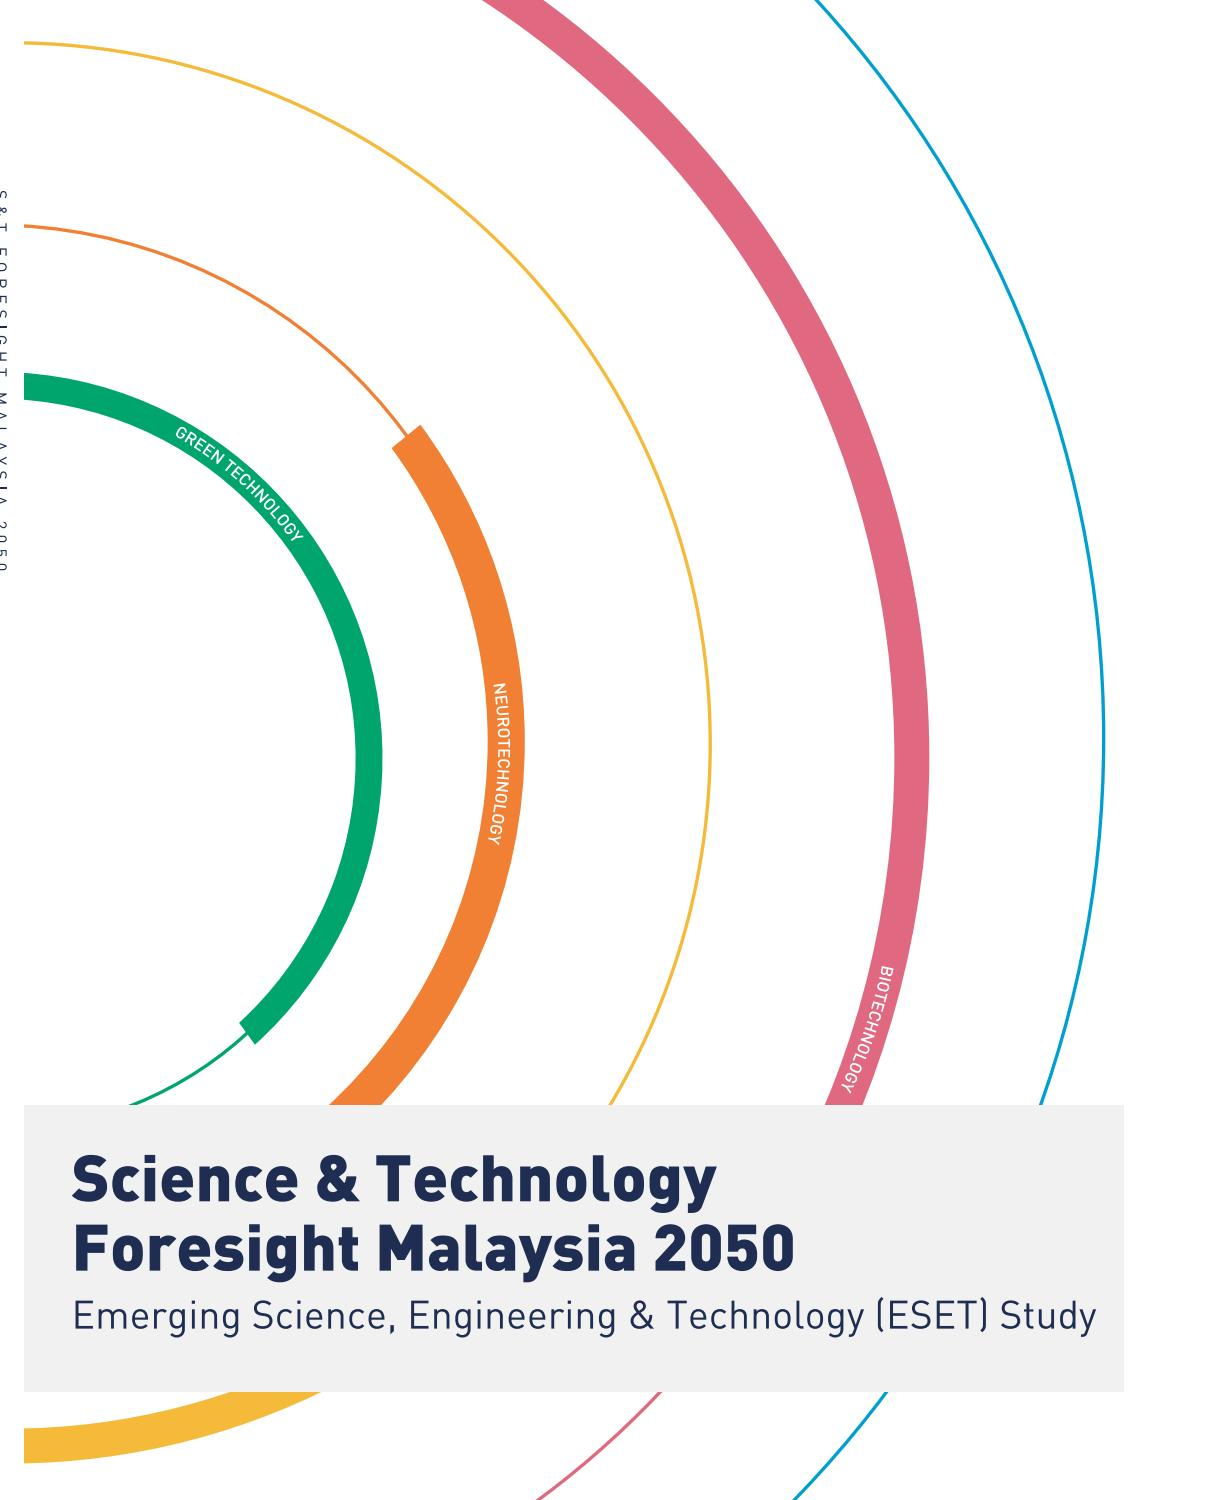 Science & Technology Foresight Malaysia 2050 by Academy of